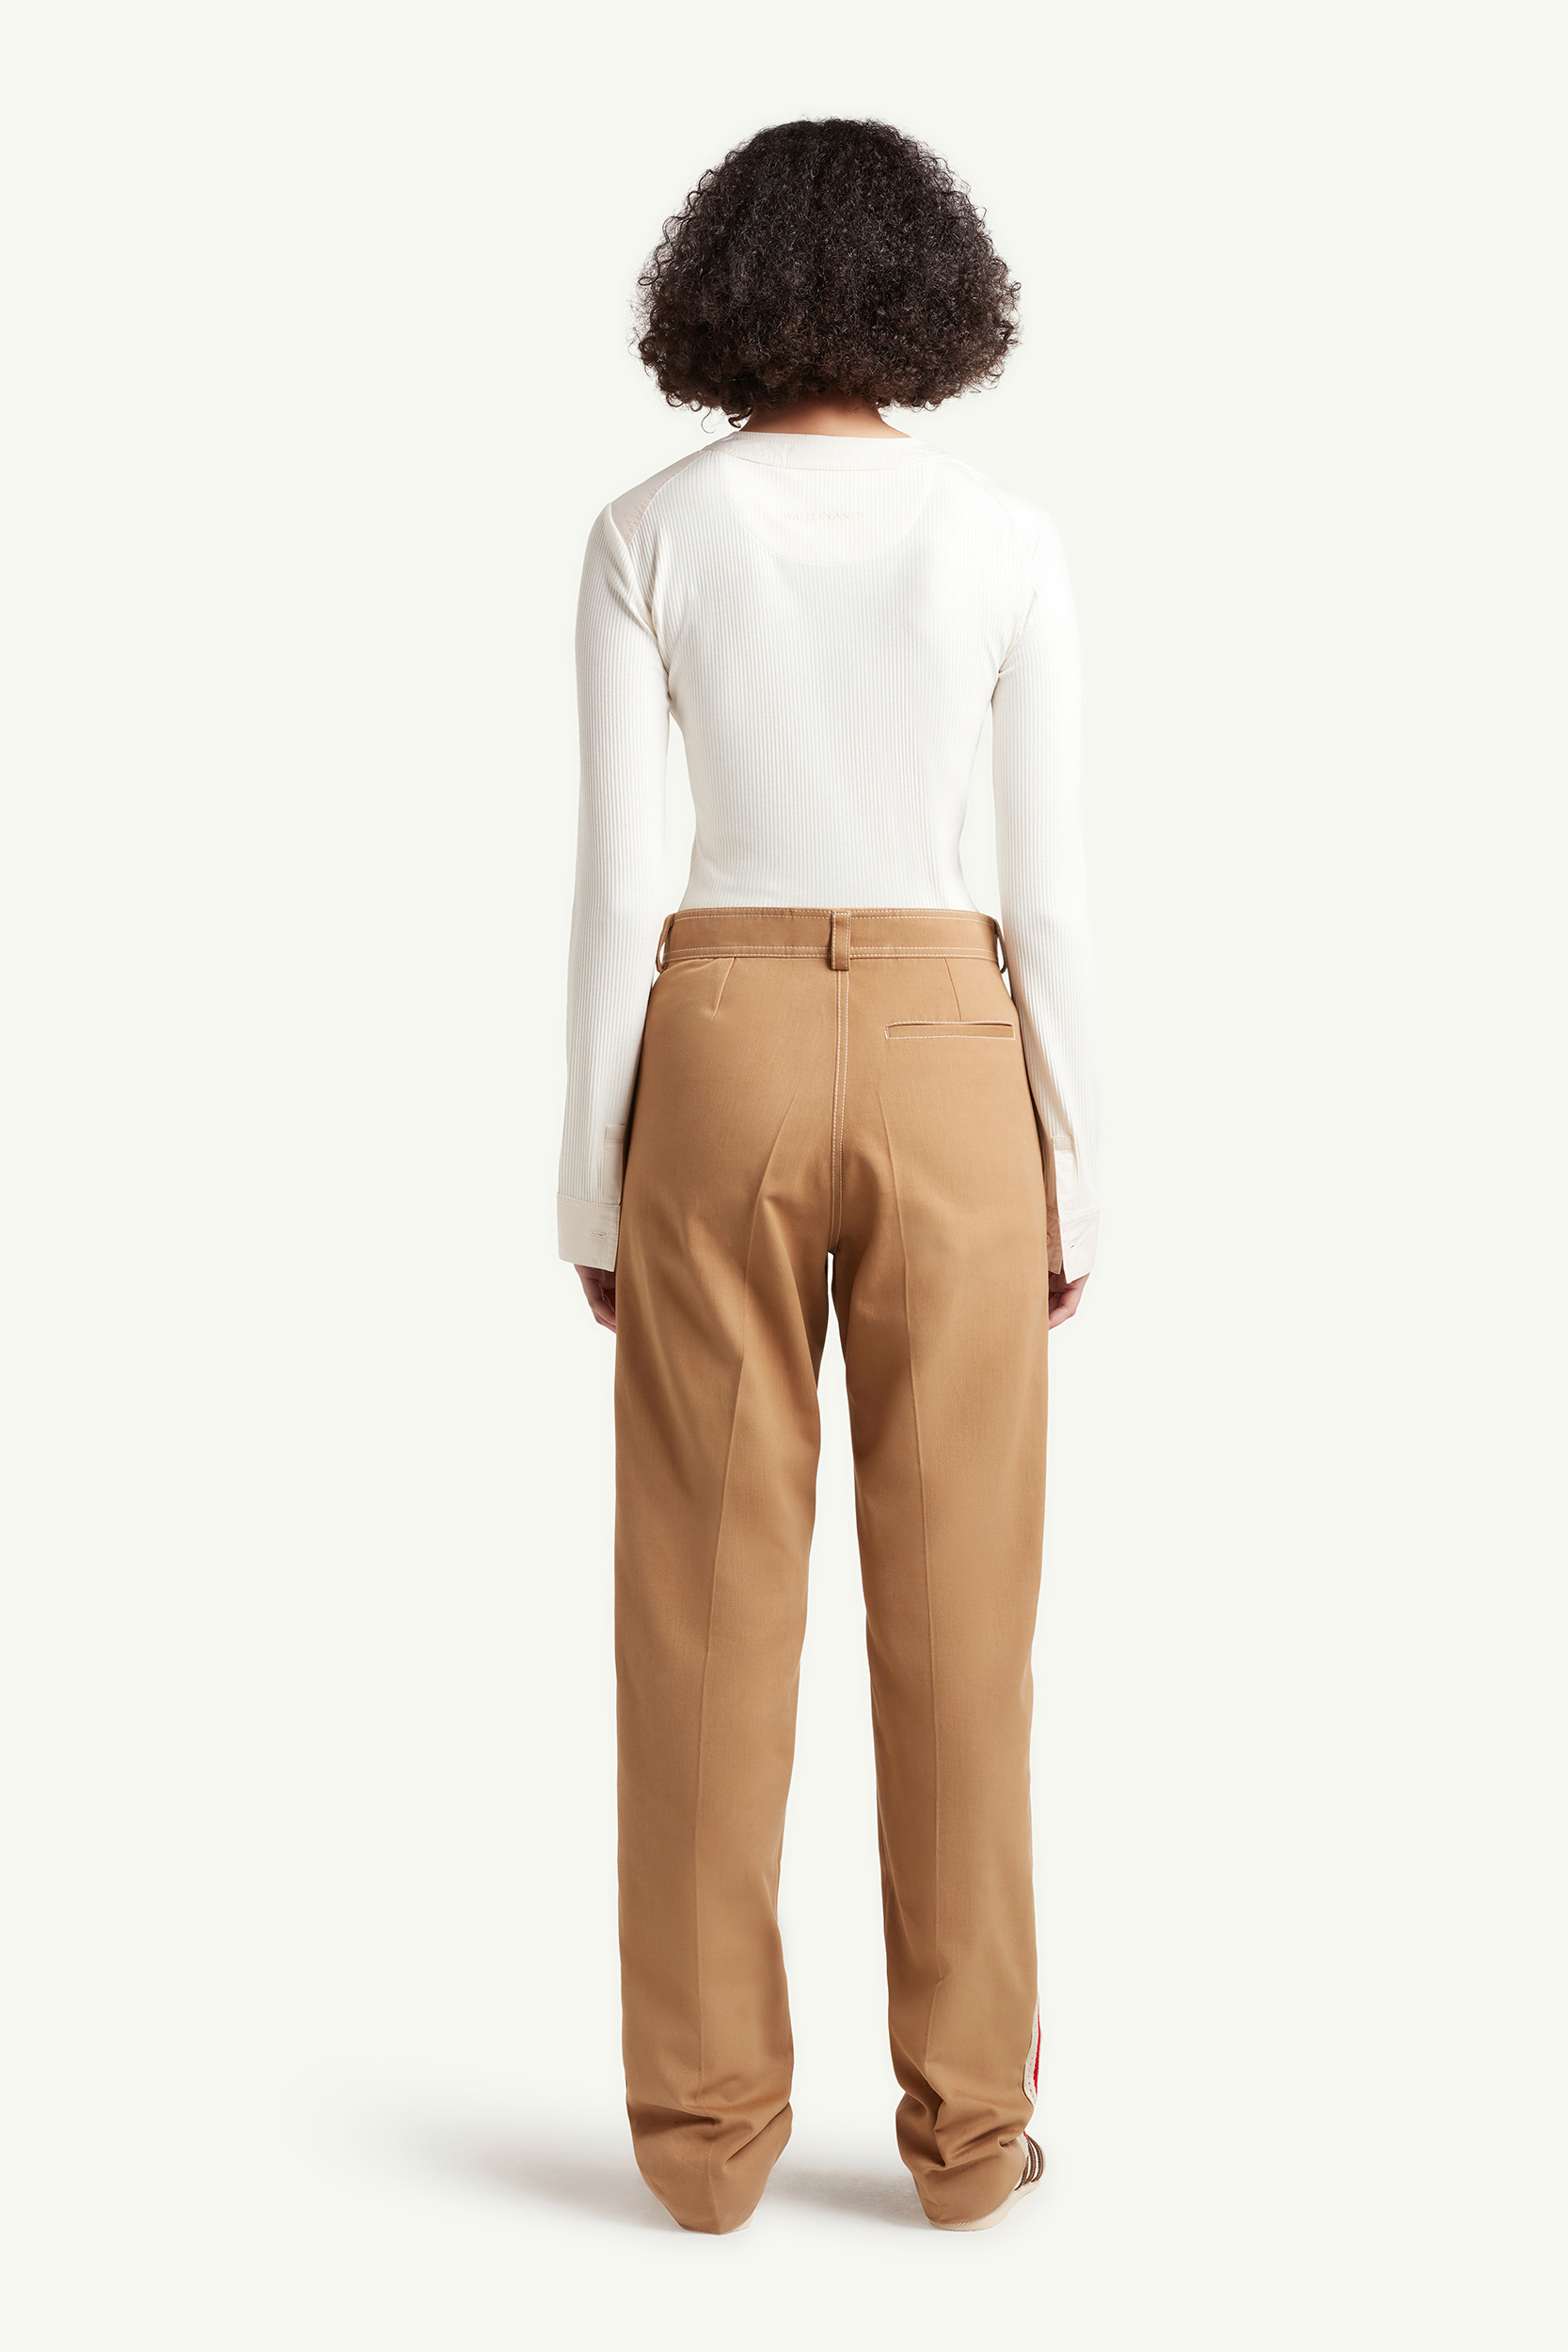 back shot of Womenswear Model wearing light brown smart trousers with white top and white trainers  | eCommerce Photography London | LRP